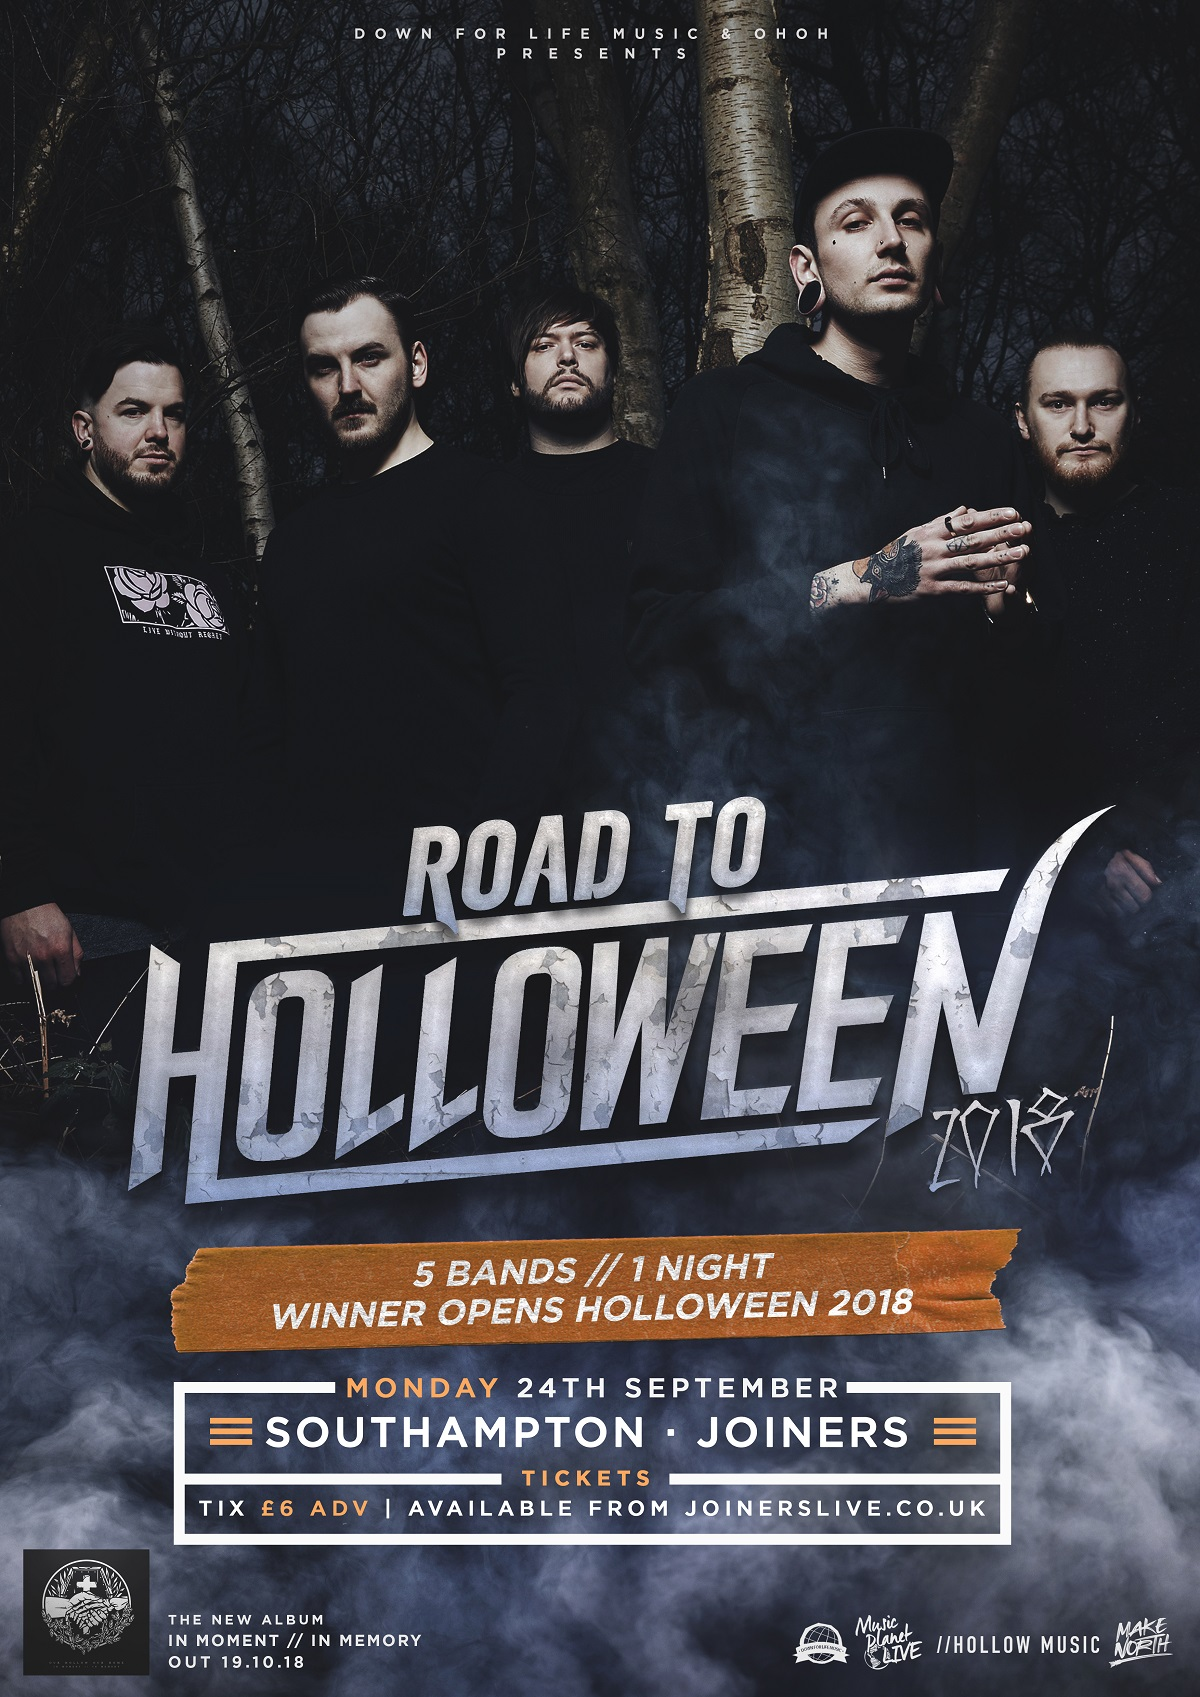 ROAD TO HOLLOWEEN